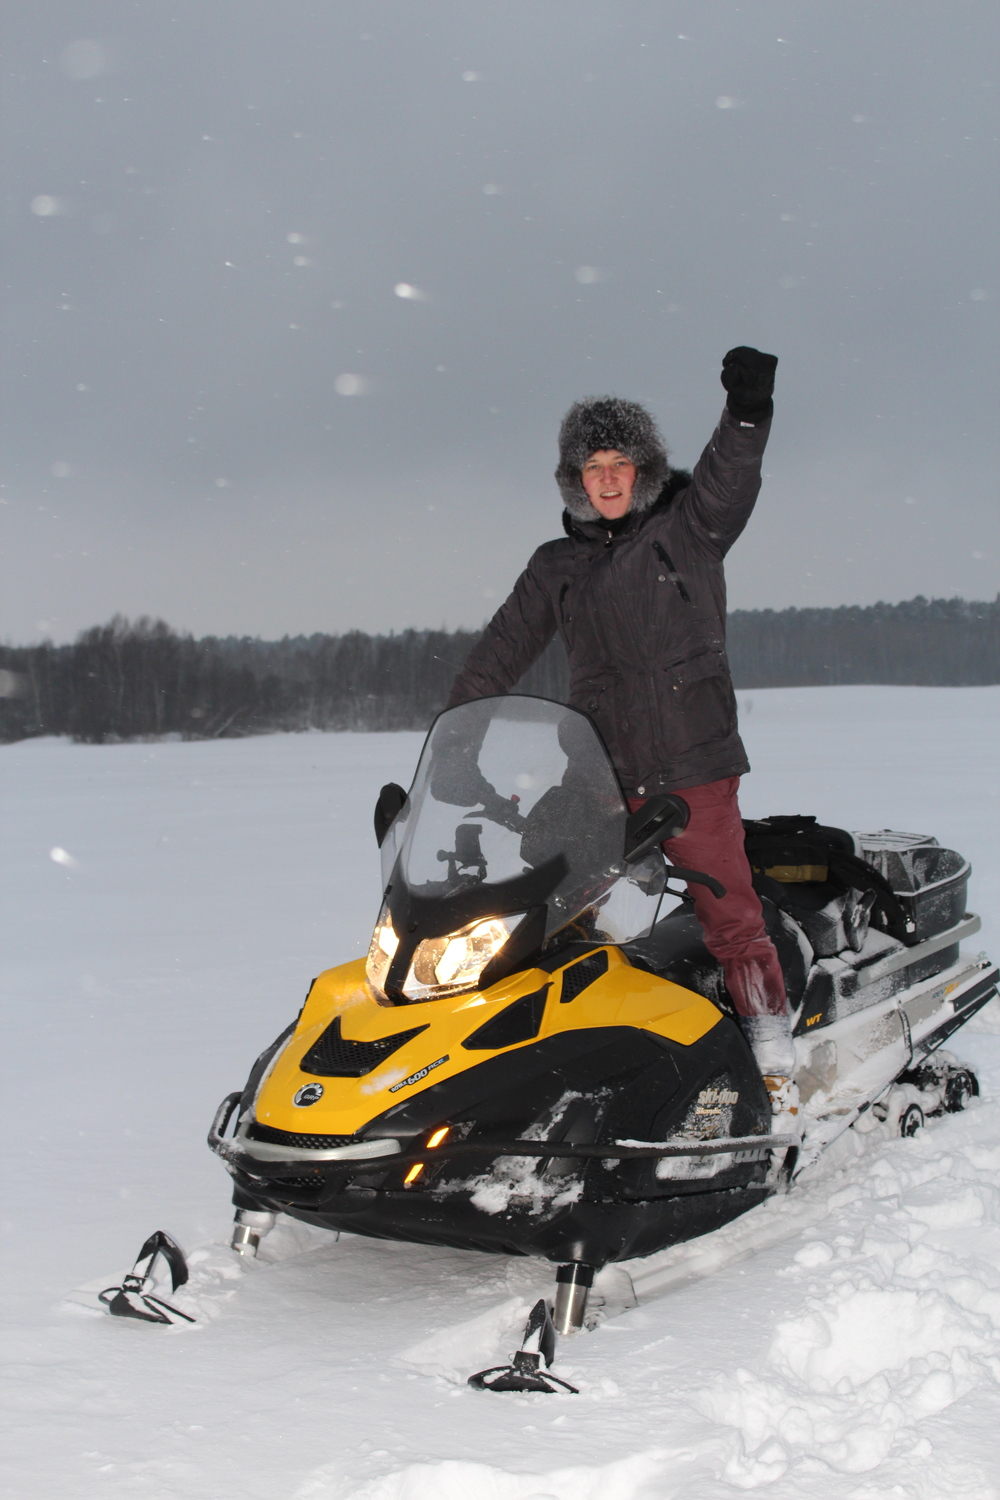 The unrivalled joy of riding a snowmobile